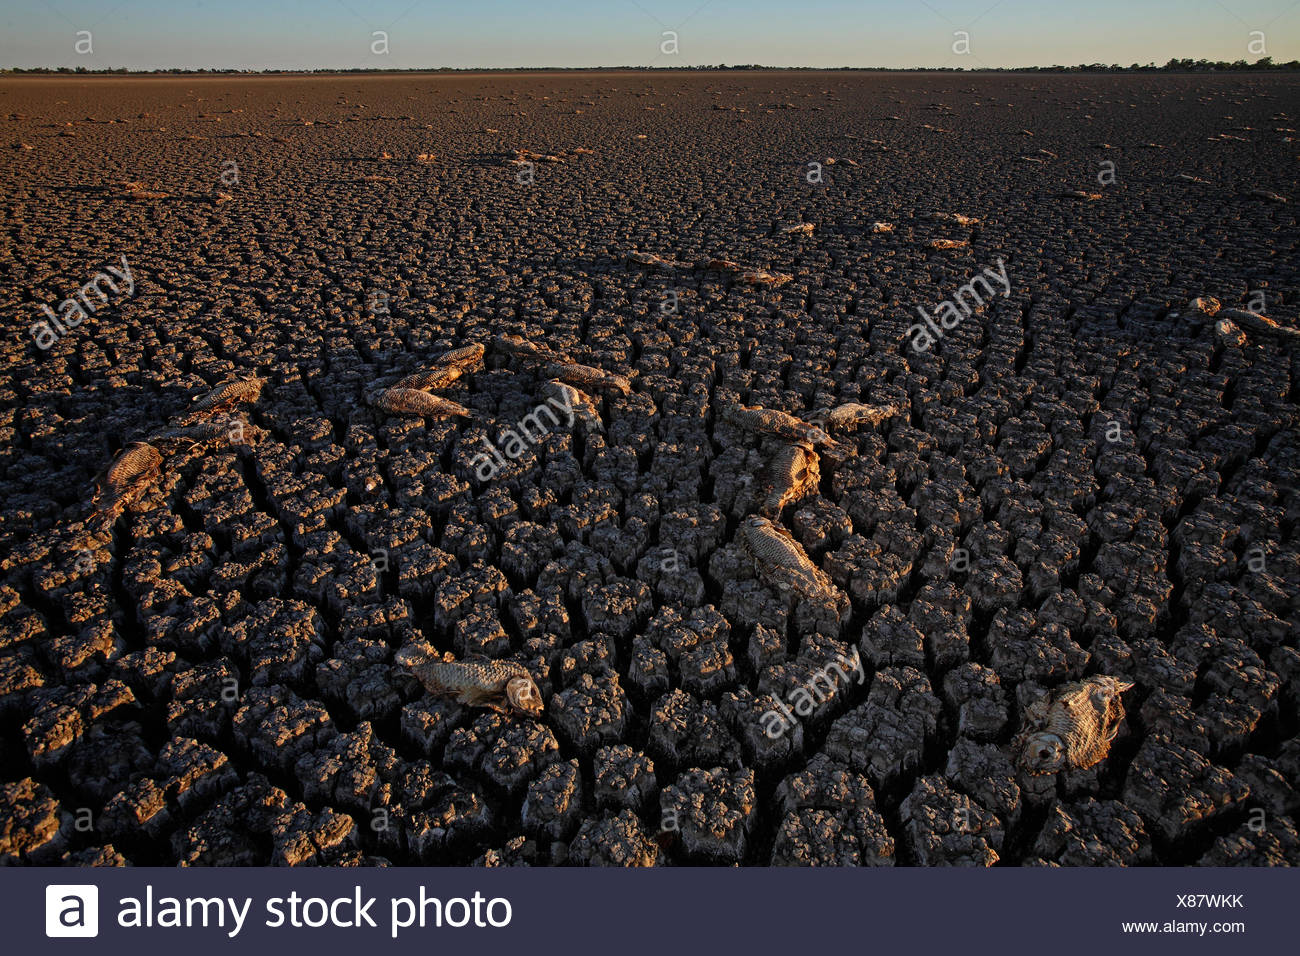 Dead fish lay scattered across the drained lake bed of Lake Boga. - Stock Image